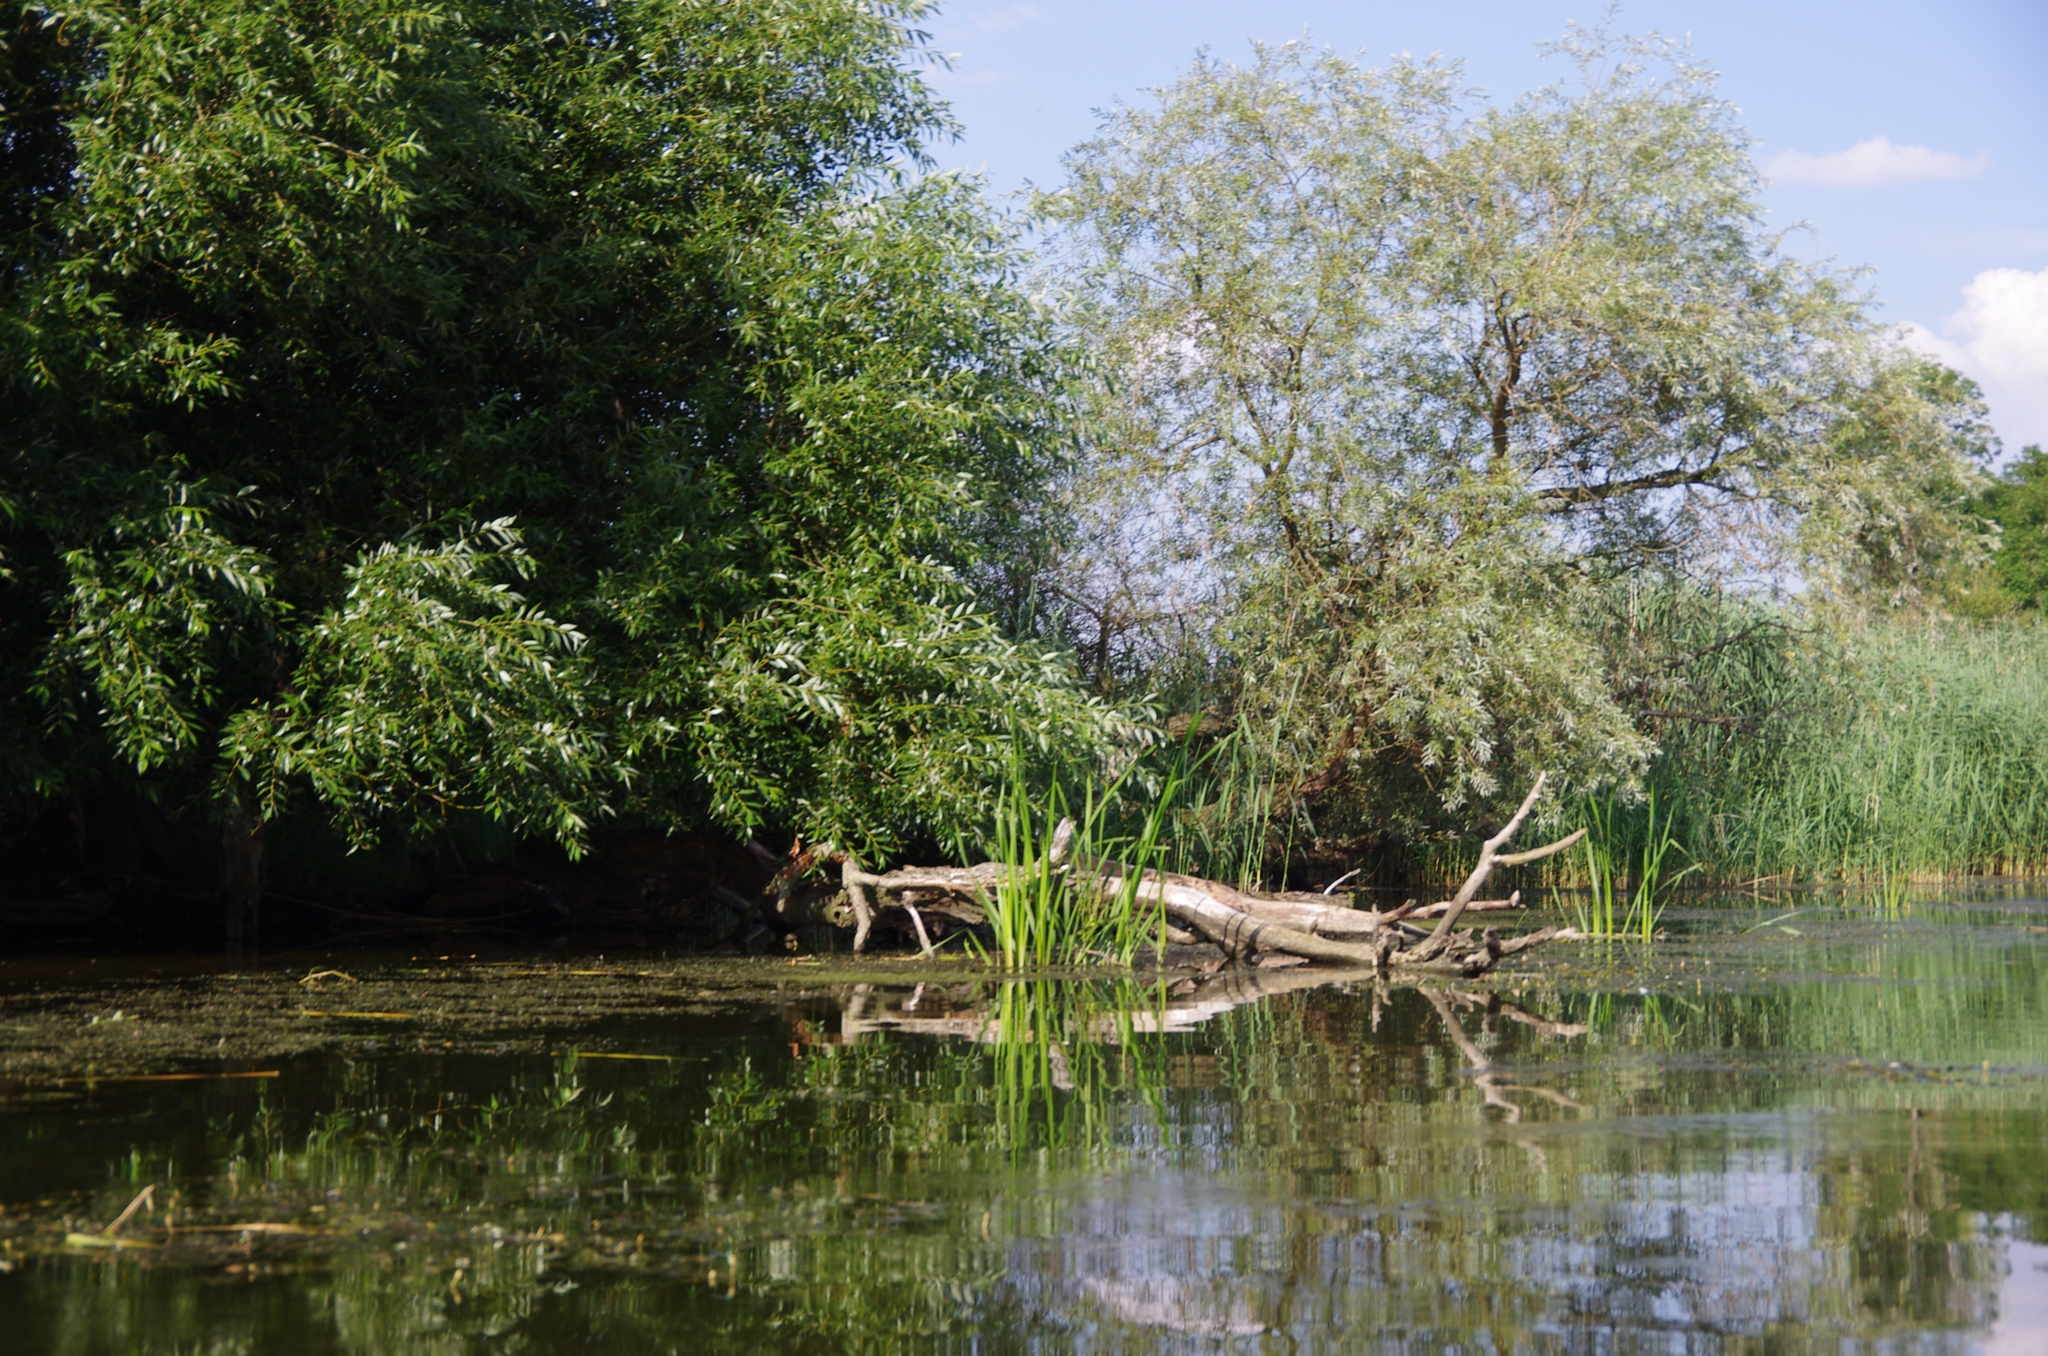 kayaking-odra-east-and-west_15-51-53_25-07-2016